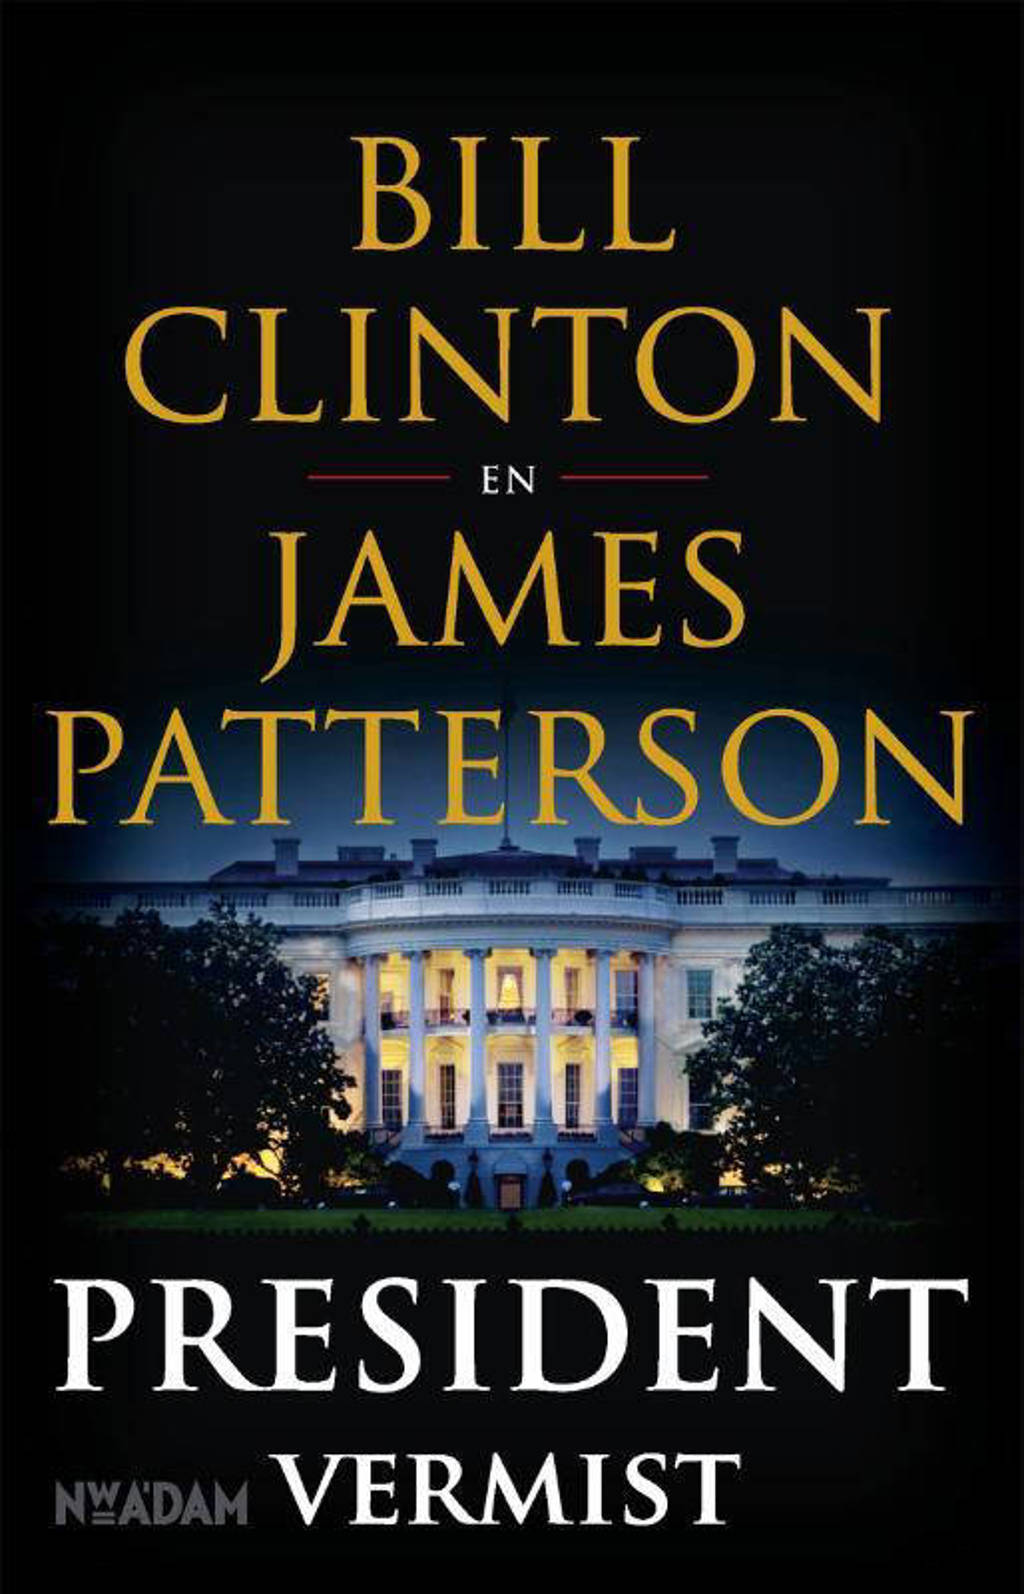 President vermist - Bill Clinton en James Patterson